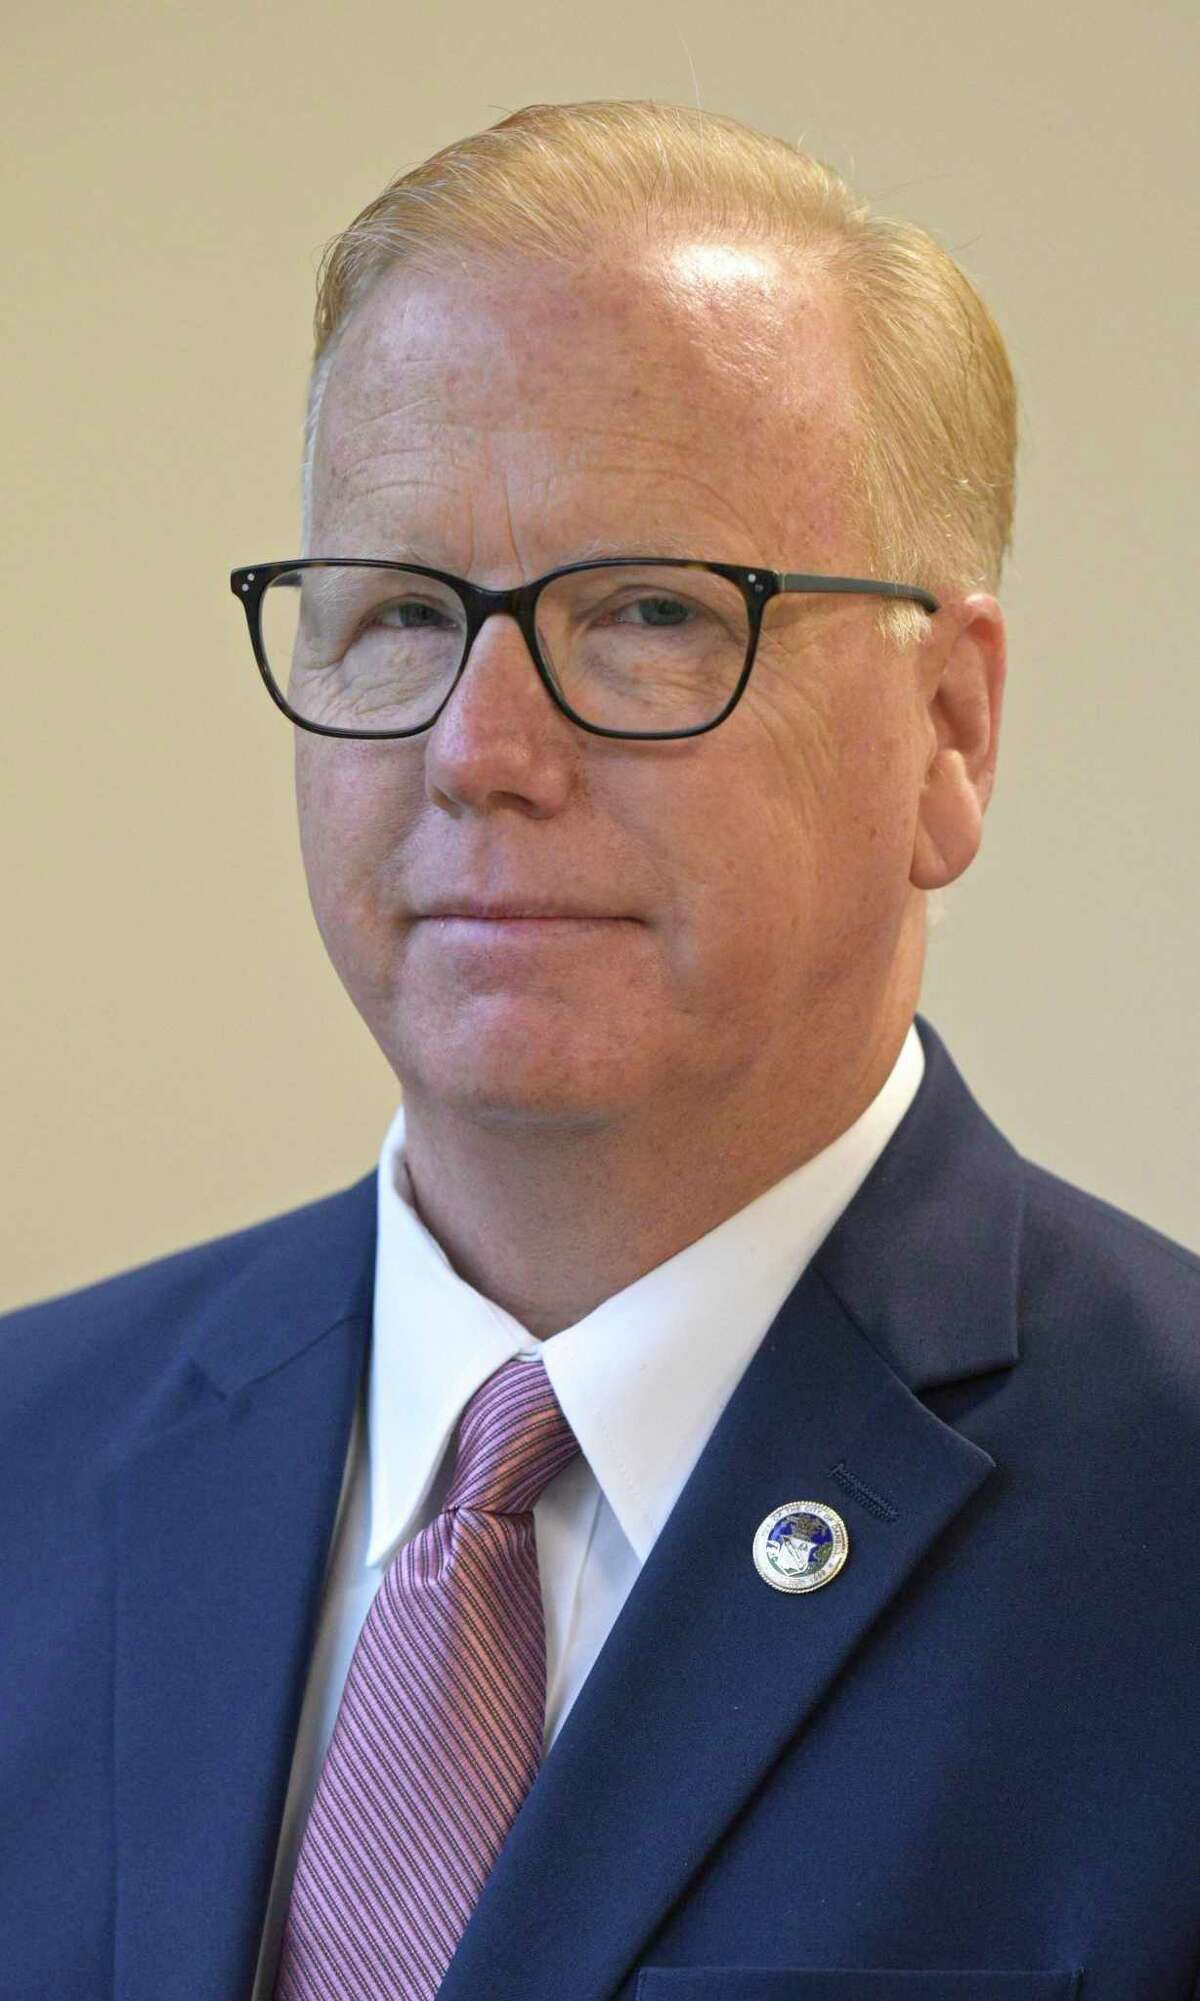 Mayoral candidate for Danbury, Republican incumbent Mark Boughton. Tuesday, October 22, 2019, in Danbury, Conn.